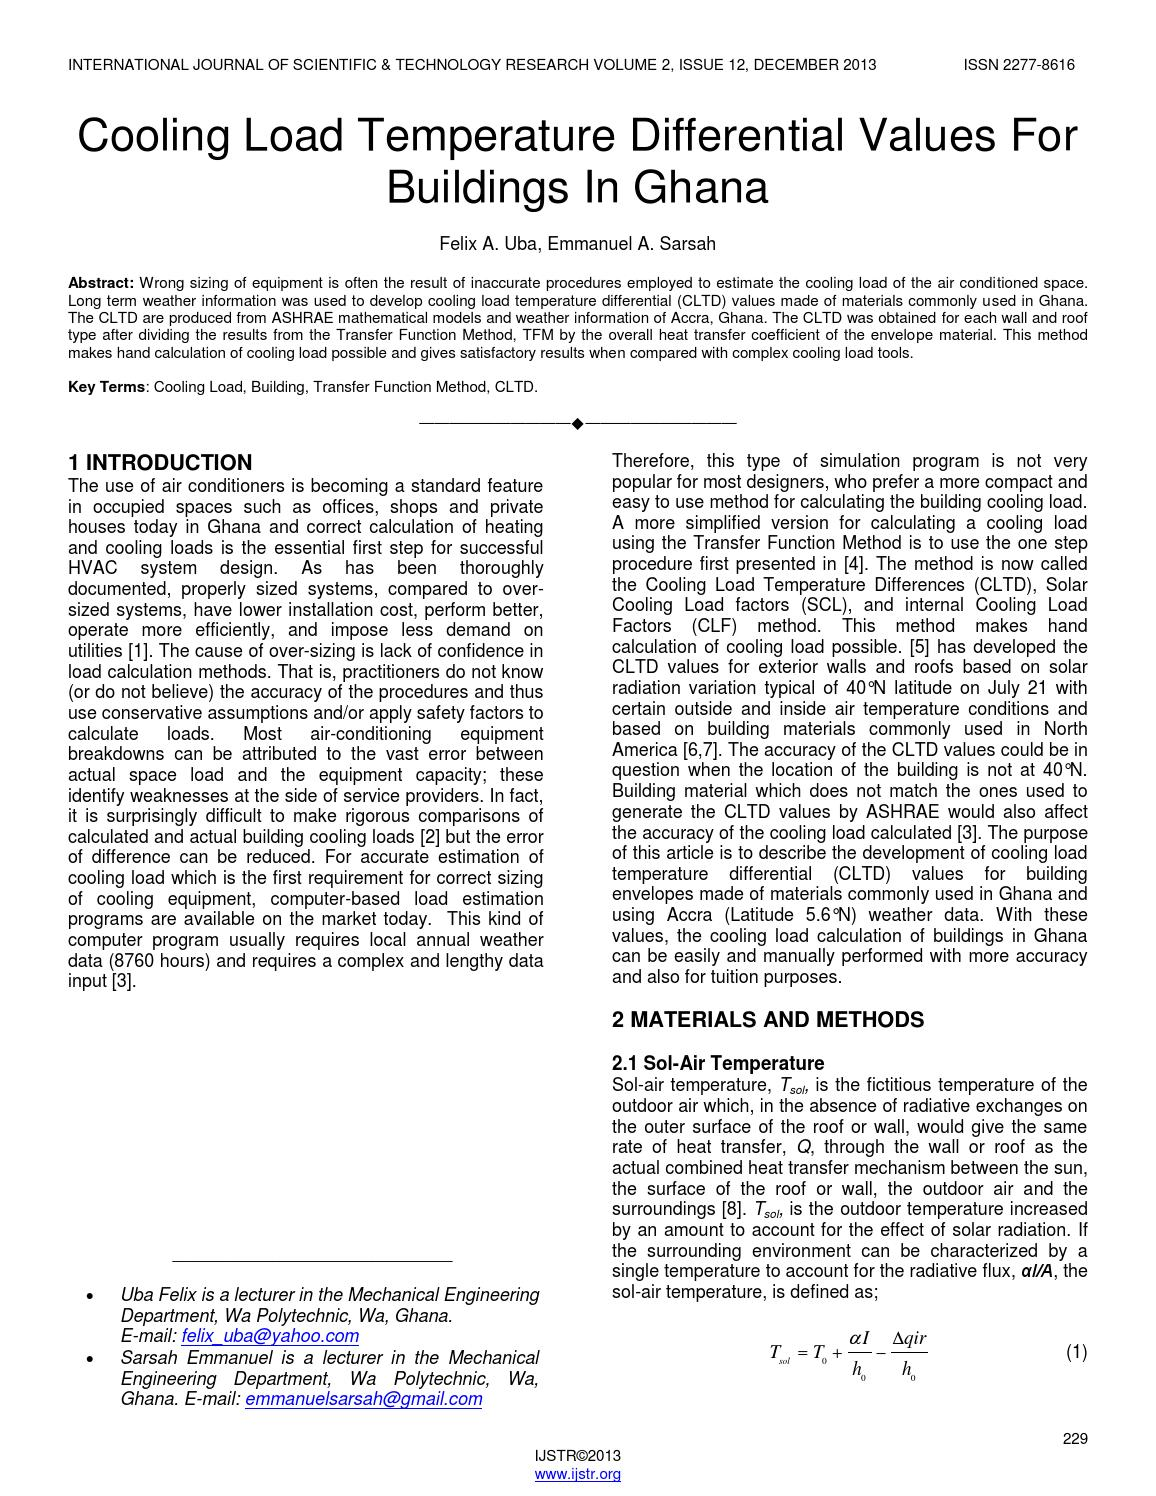 Cooling load temperature differential values for buildings in ghana